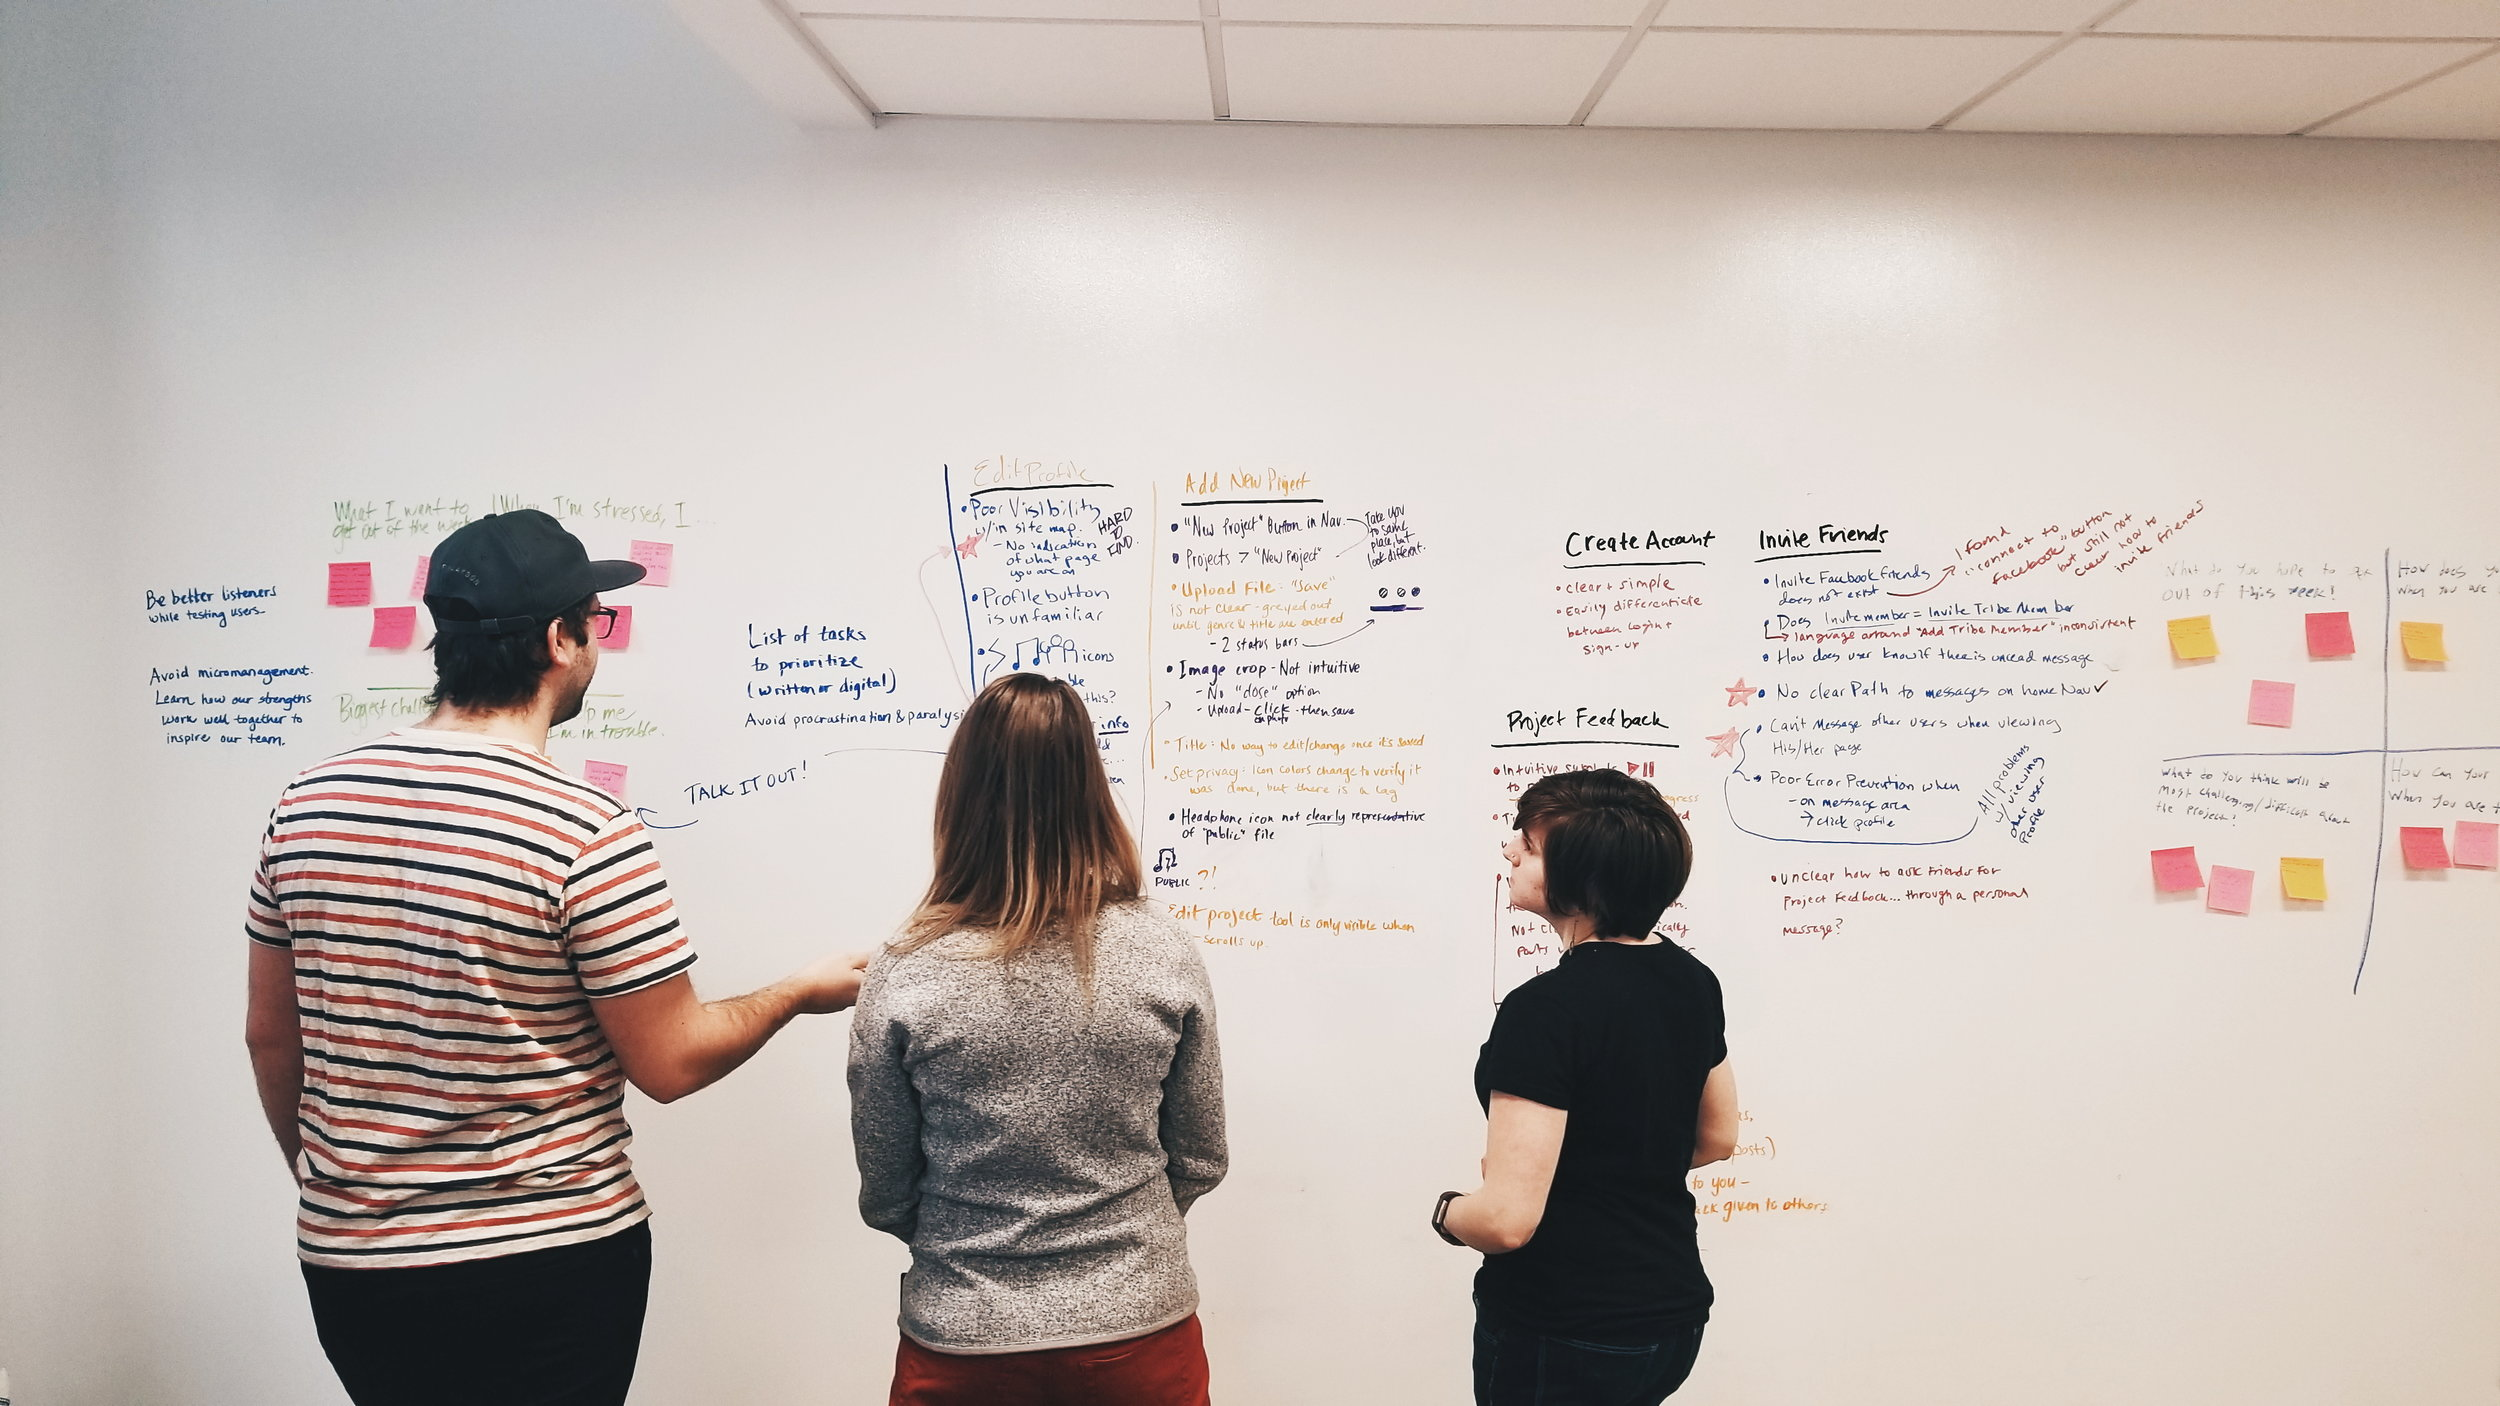 Organizing findings from our evaluation of BounceTribe's existing website.